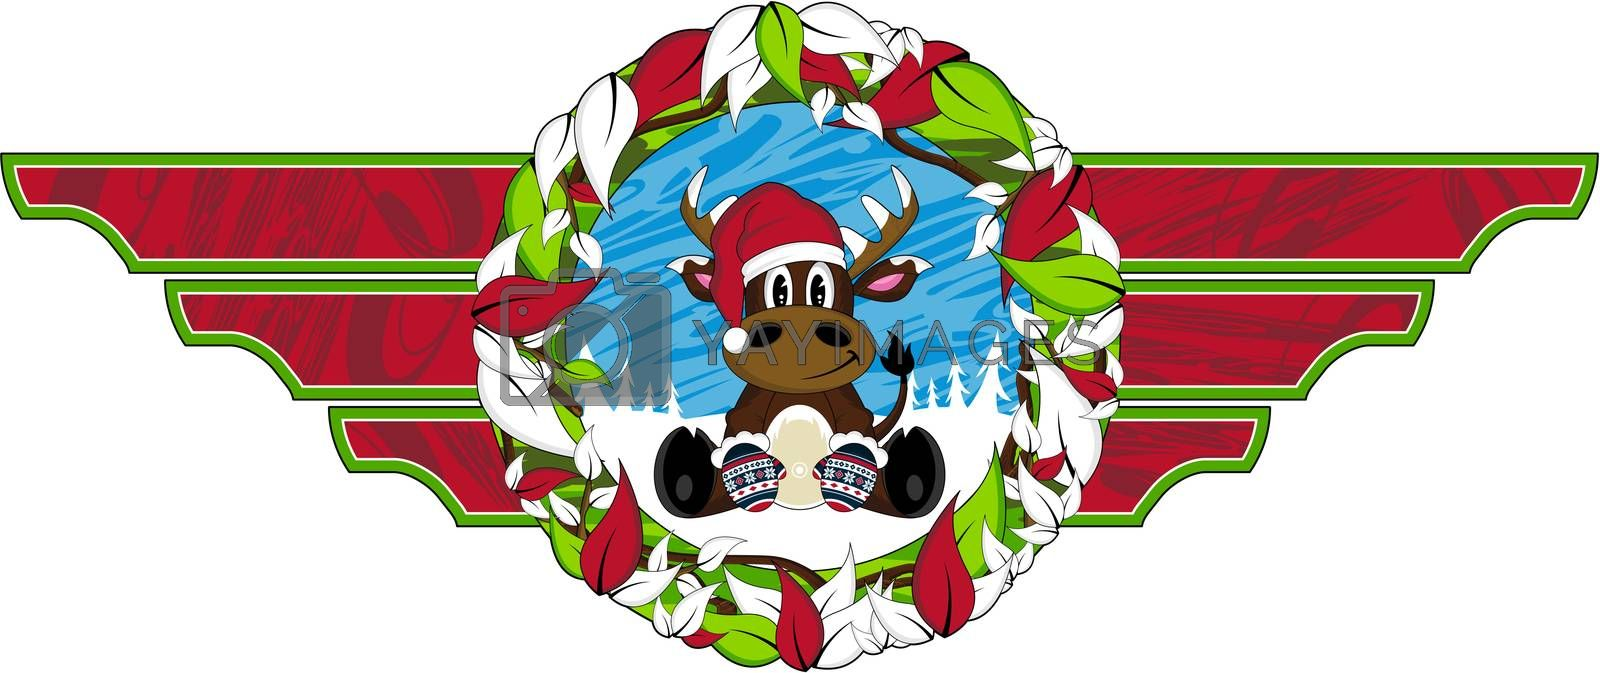 Cute Cartoon Santa Claus Reindeer Christmas Vector Illustration - by Mark Murphy Creative